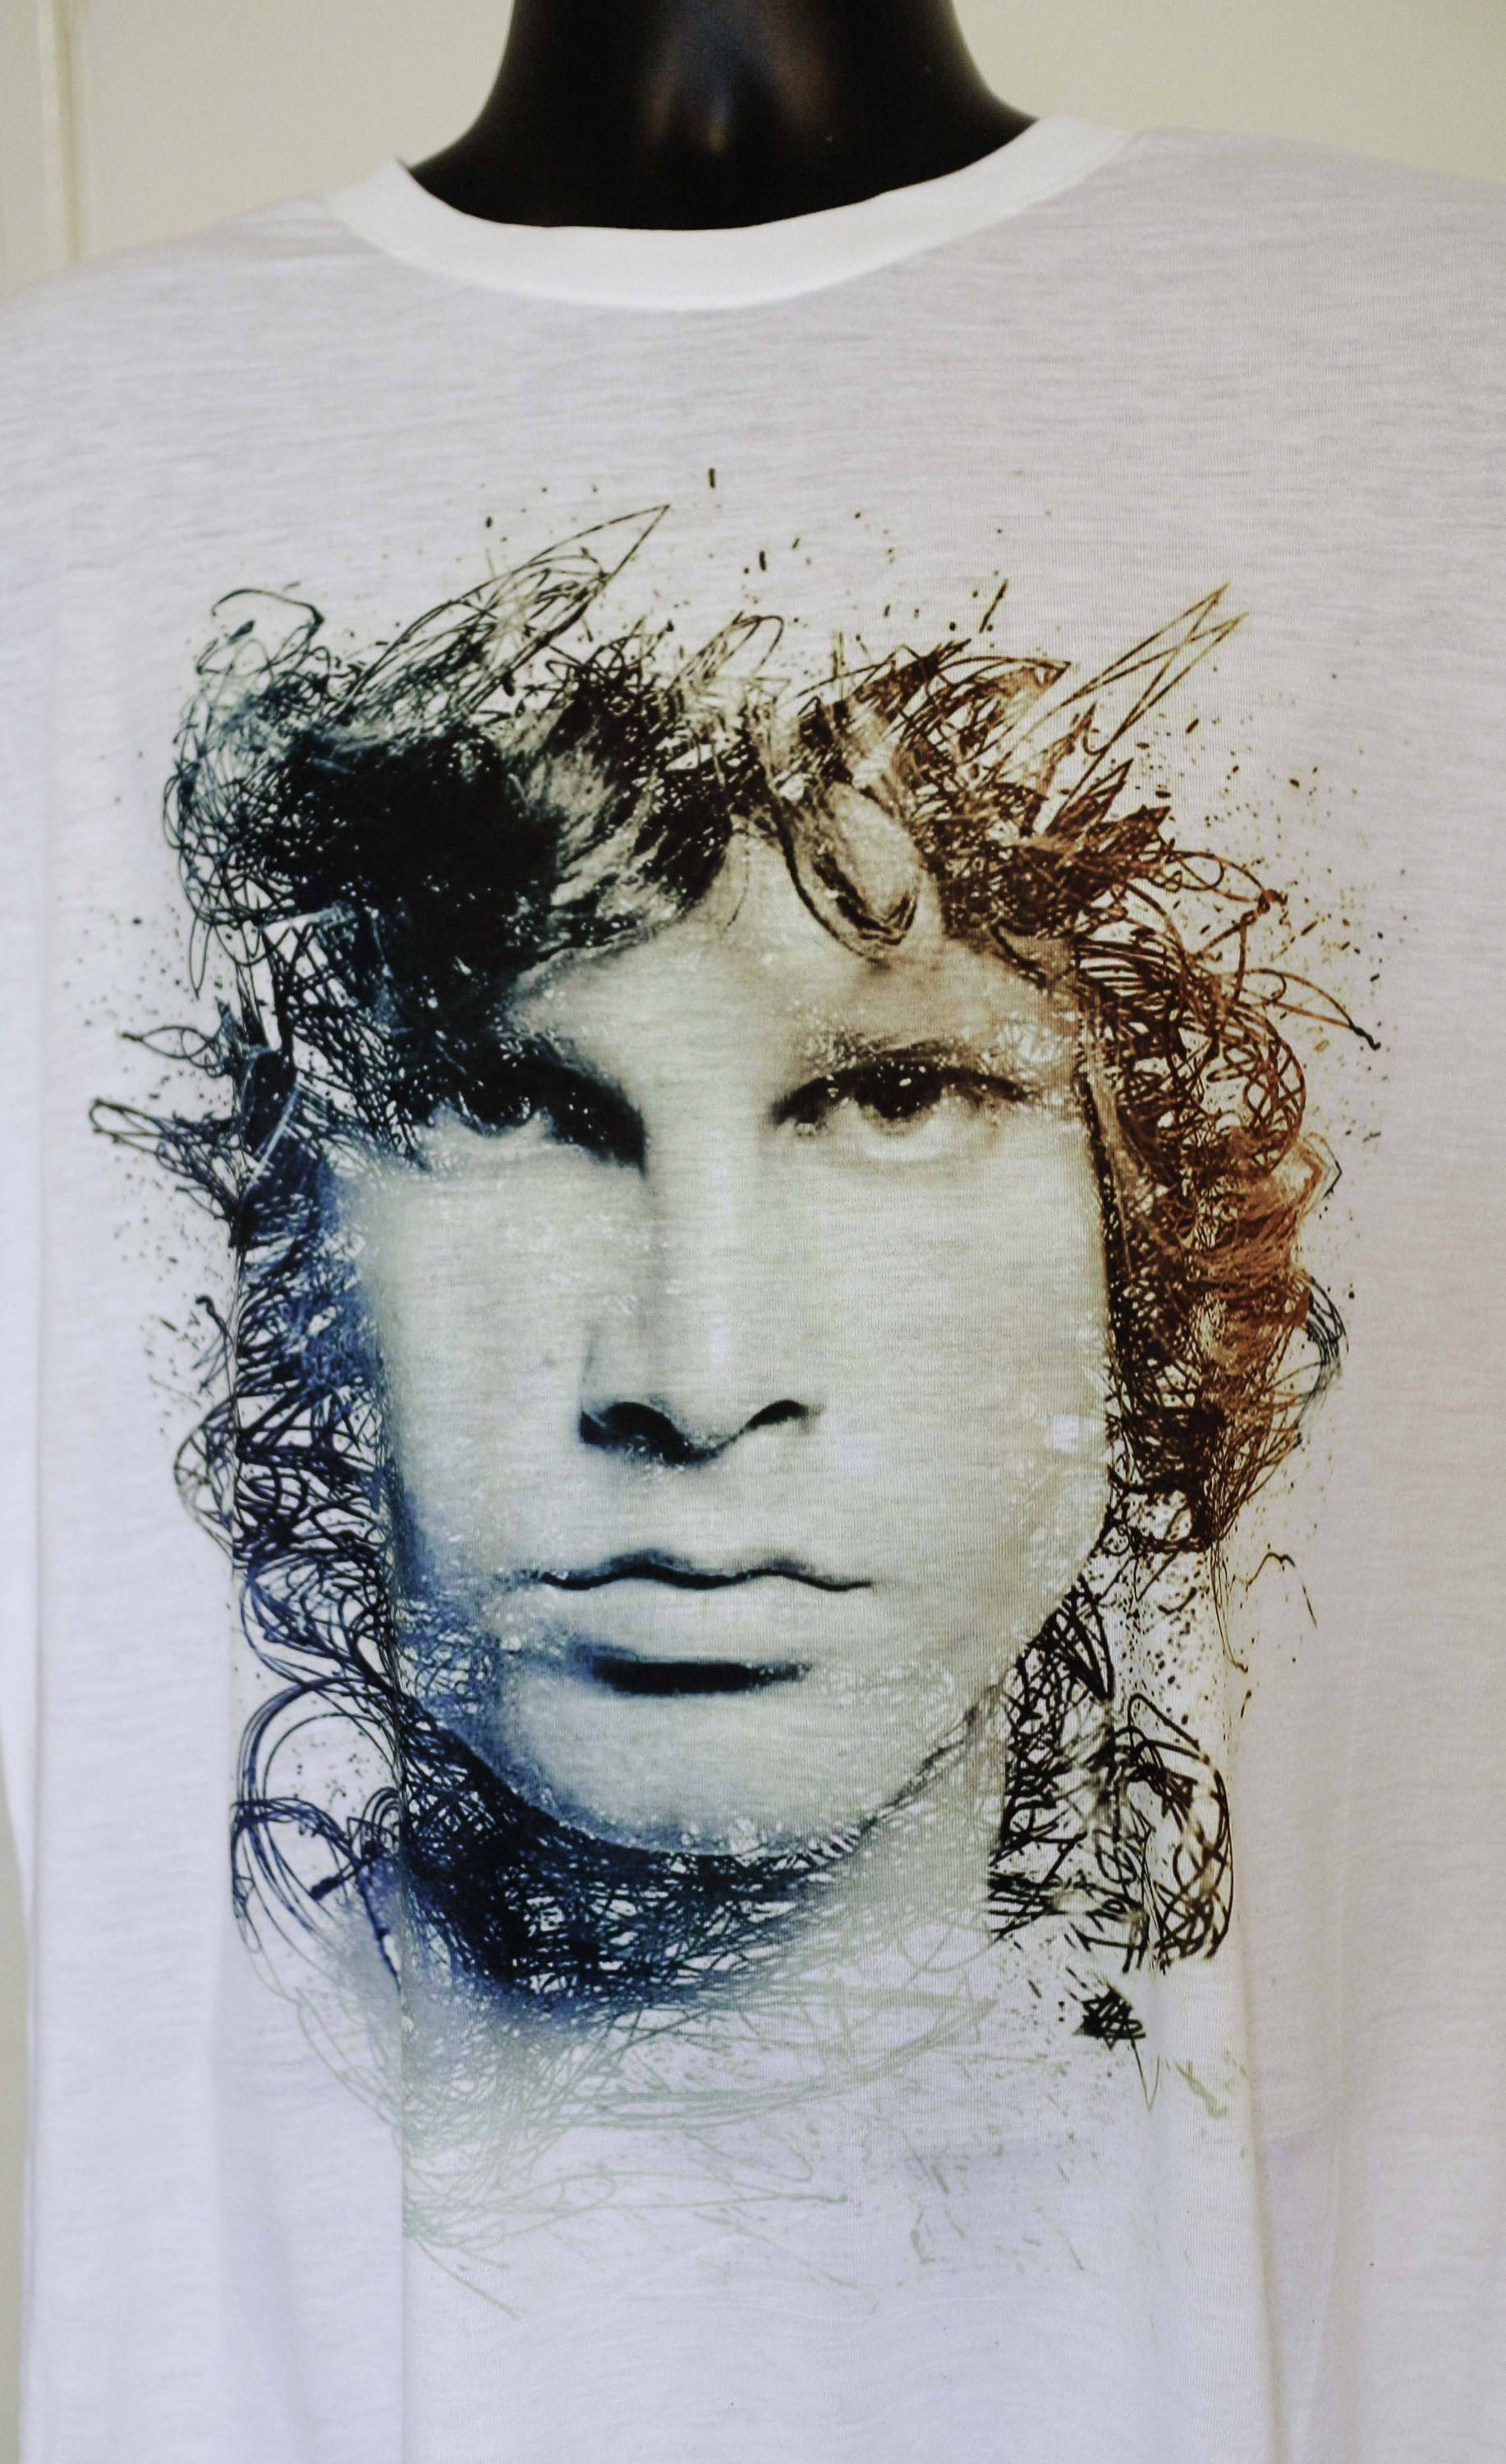 Stunning Jim Morrison ,The Doors, Rock ,t-shirt ,t shirt,Jim Morrison t shirt, tshirts, t shirts,t-shirts,tees,birtday present by Emmanuelgift on Etsy